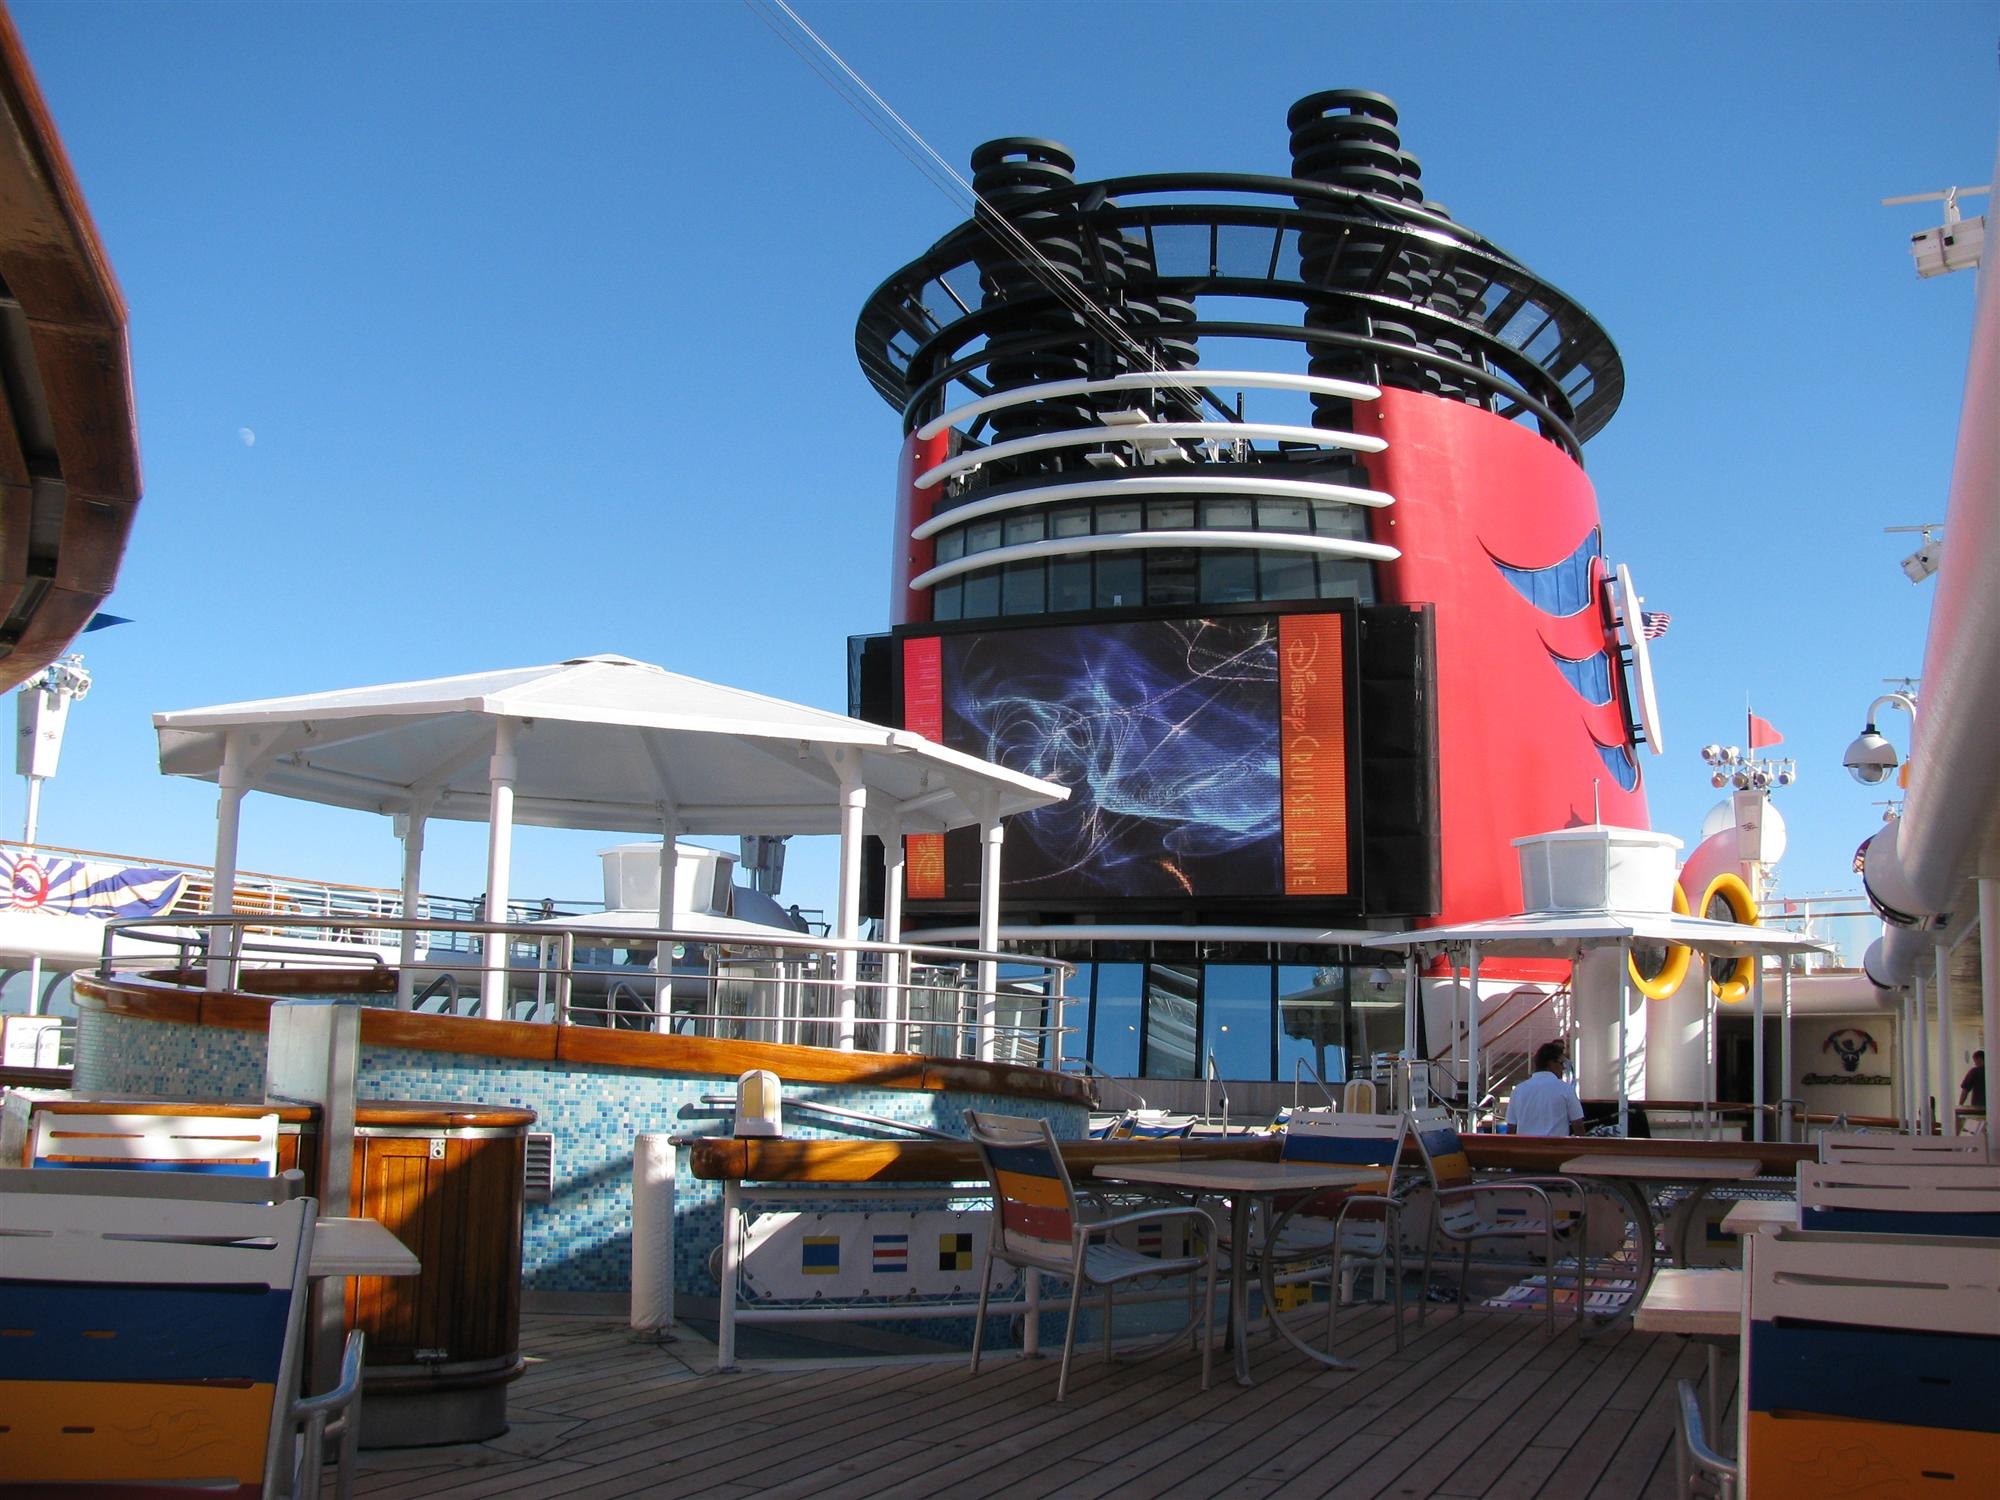 Discover the activities onboard the Disney Cruise Line |PassPorter.com